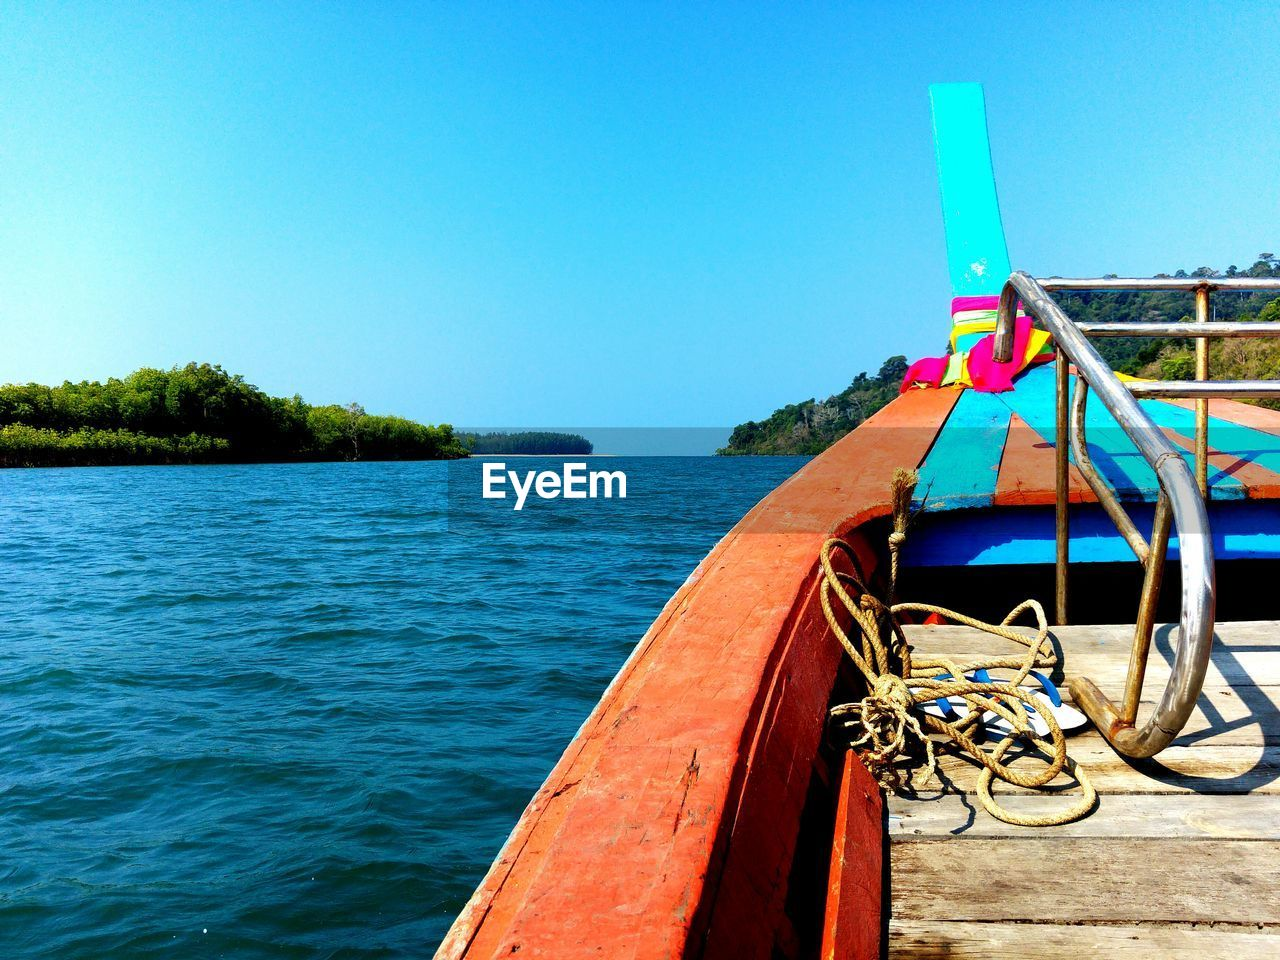 water, nautical vessel, transportation, clear sky, sky, nature, mode of transportation, blue, copy space, no people, day, rope, sea, moored, outdoors, tranquility, scenics - nature